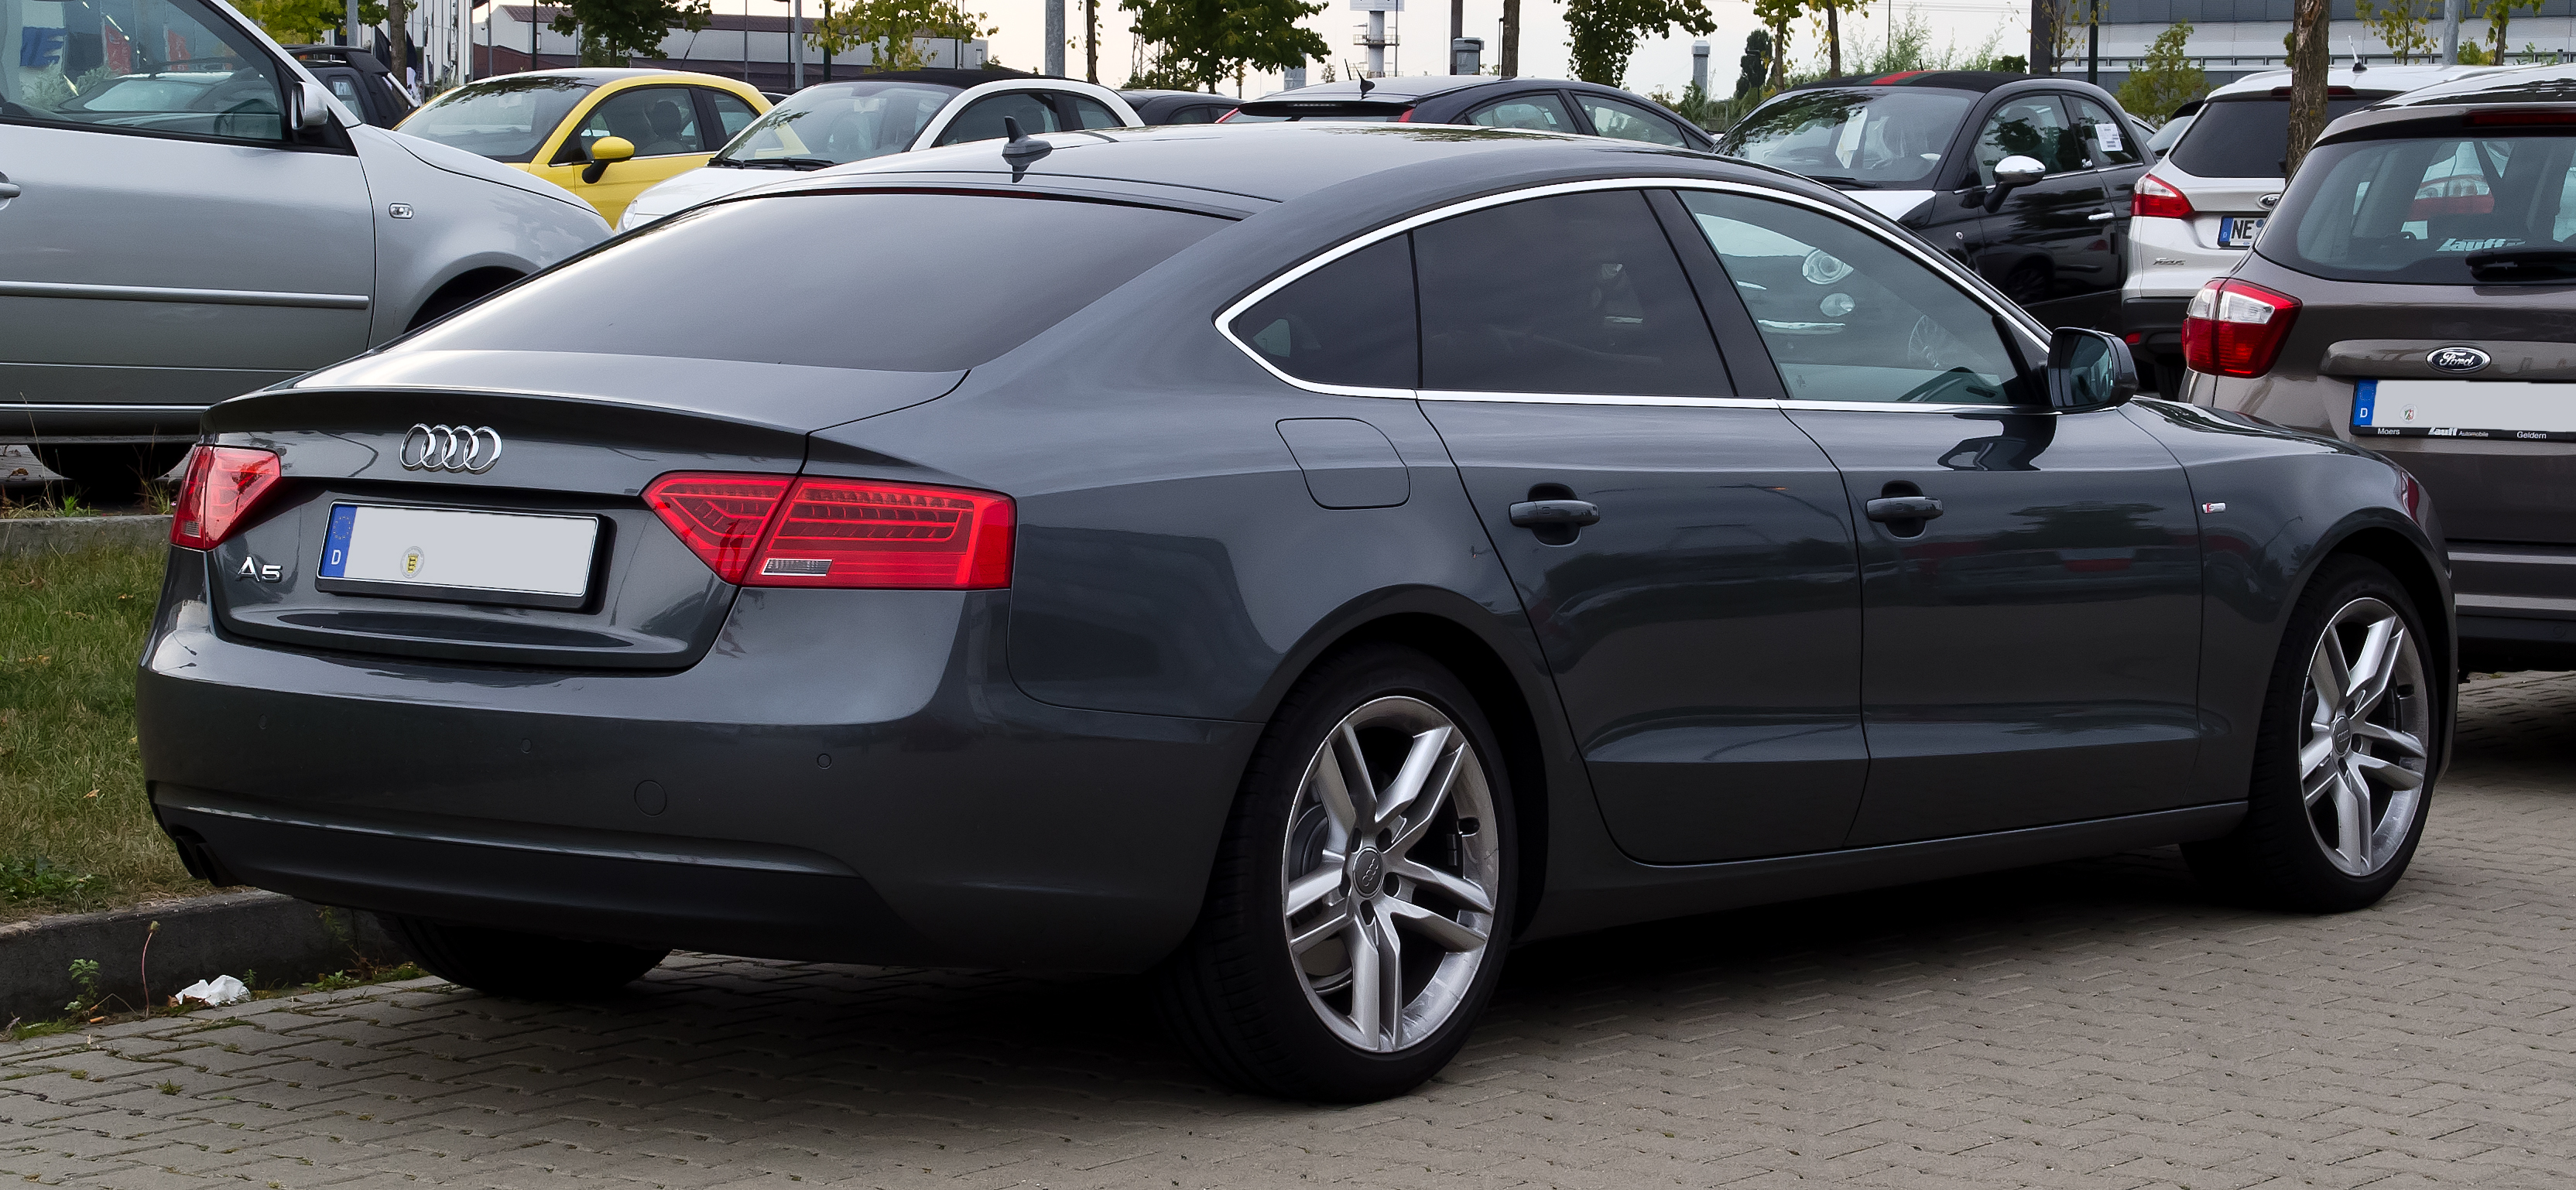 Audi a5 20 tdi black edition 2012